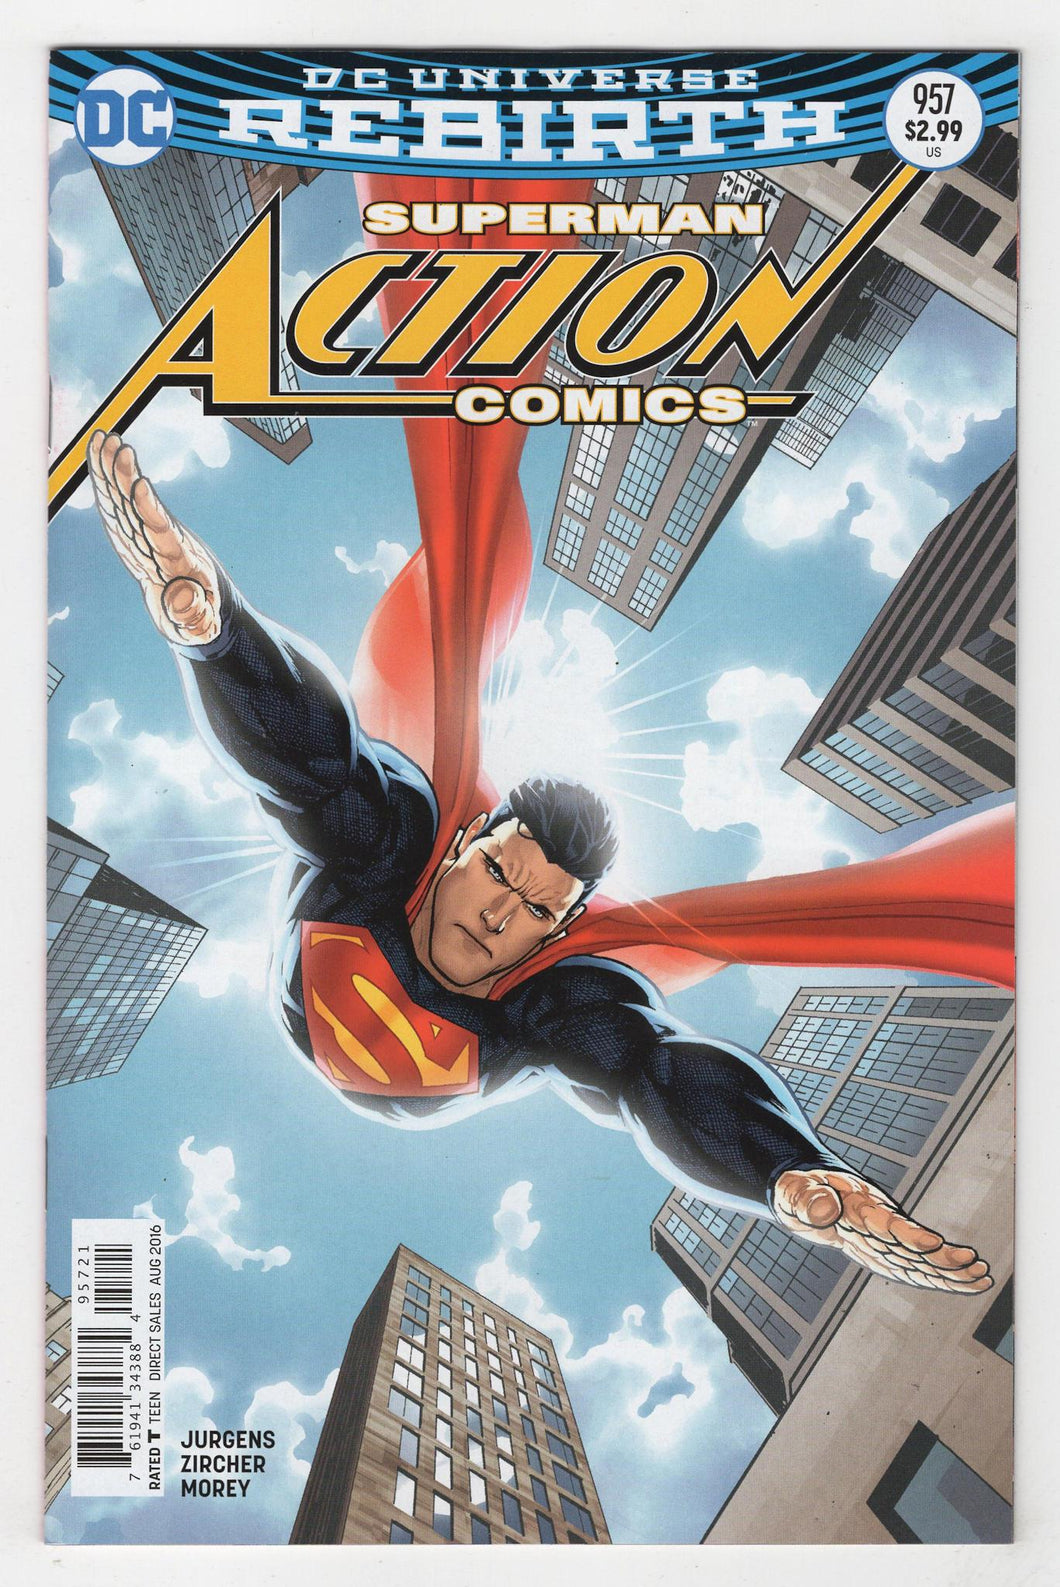 Action Comics #957 Variant Cover Front